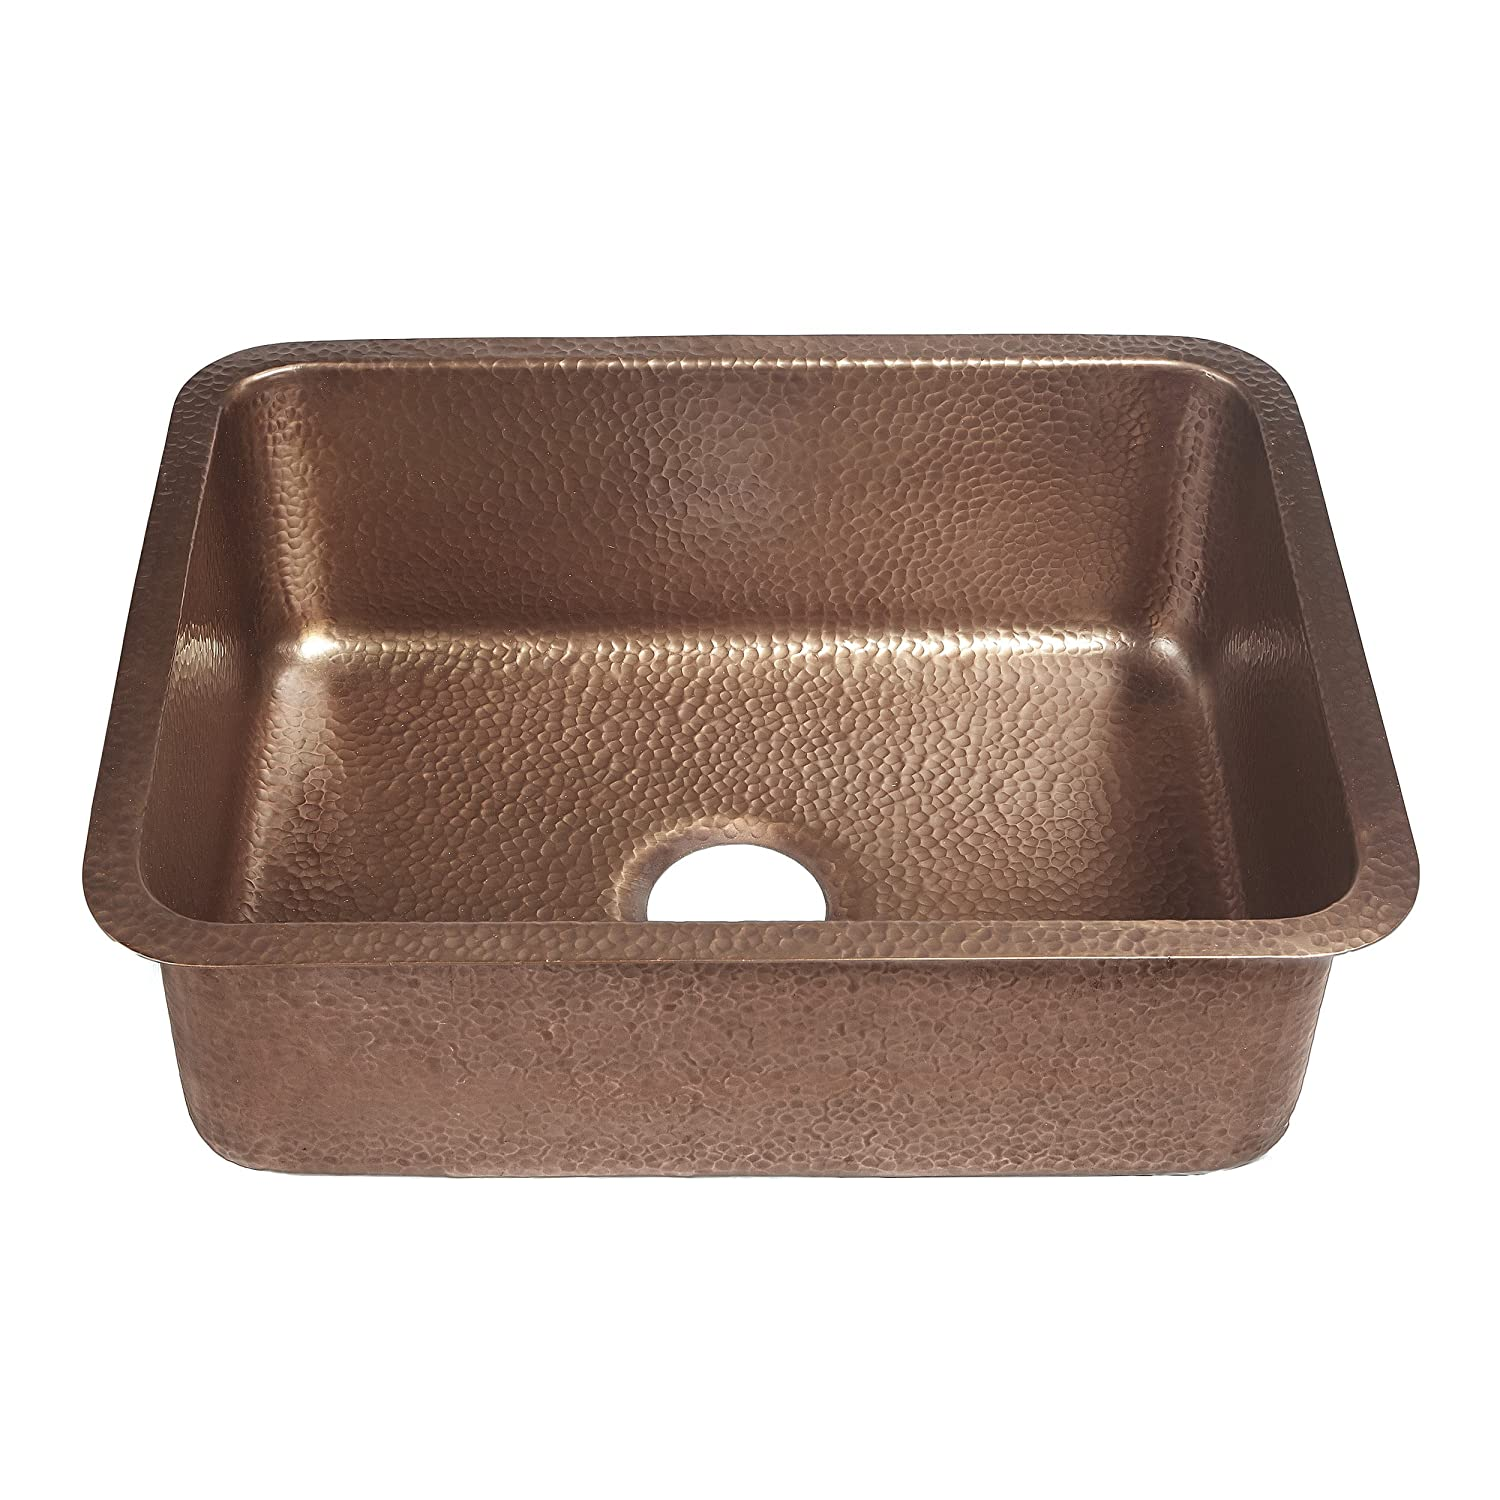 Sinkology SK201 23AC Classic Renoir Undermount copper Sink 23 In